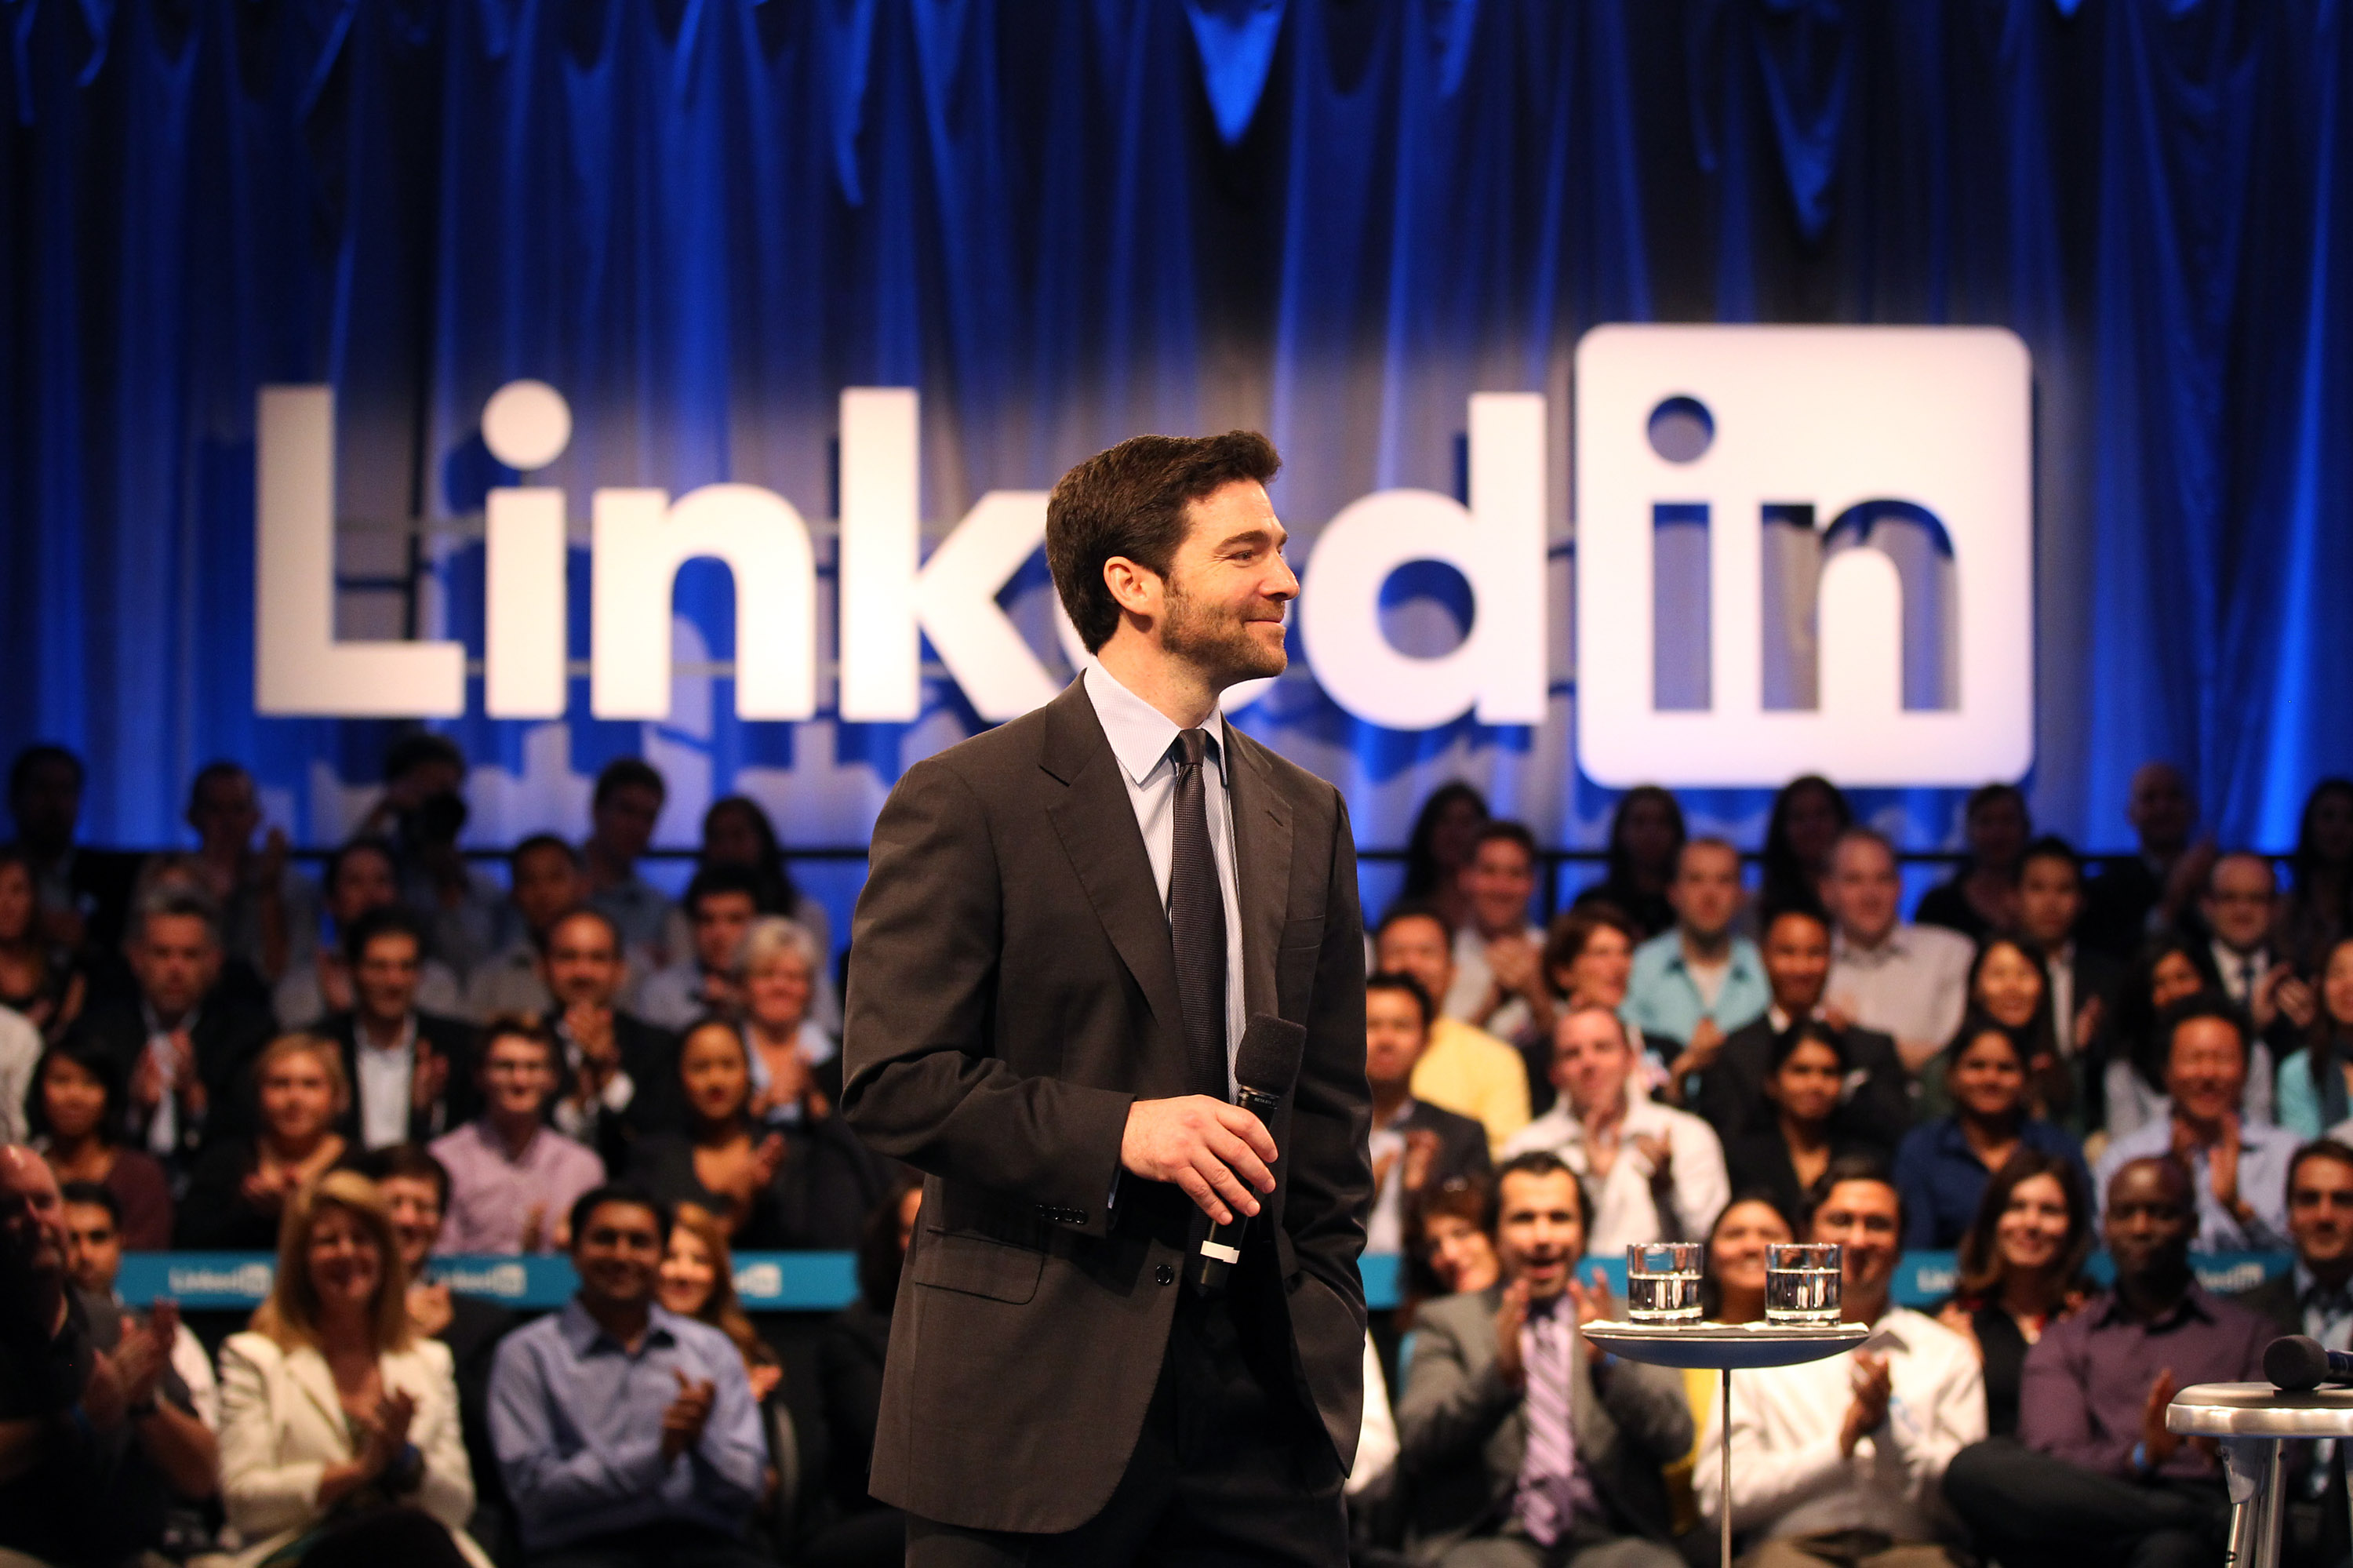 Linkedin CEO Jeff Weiner will be staying on to lead the company under Microsoft's control.